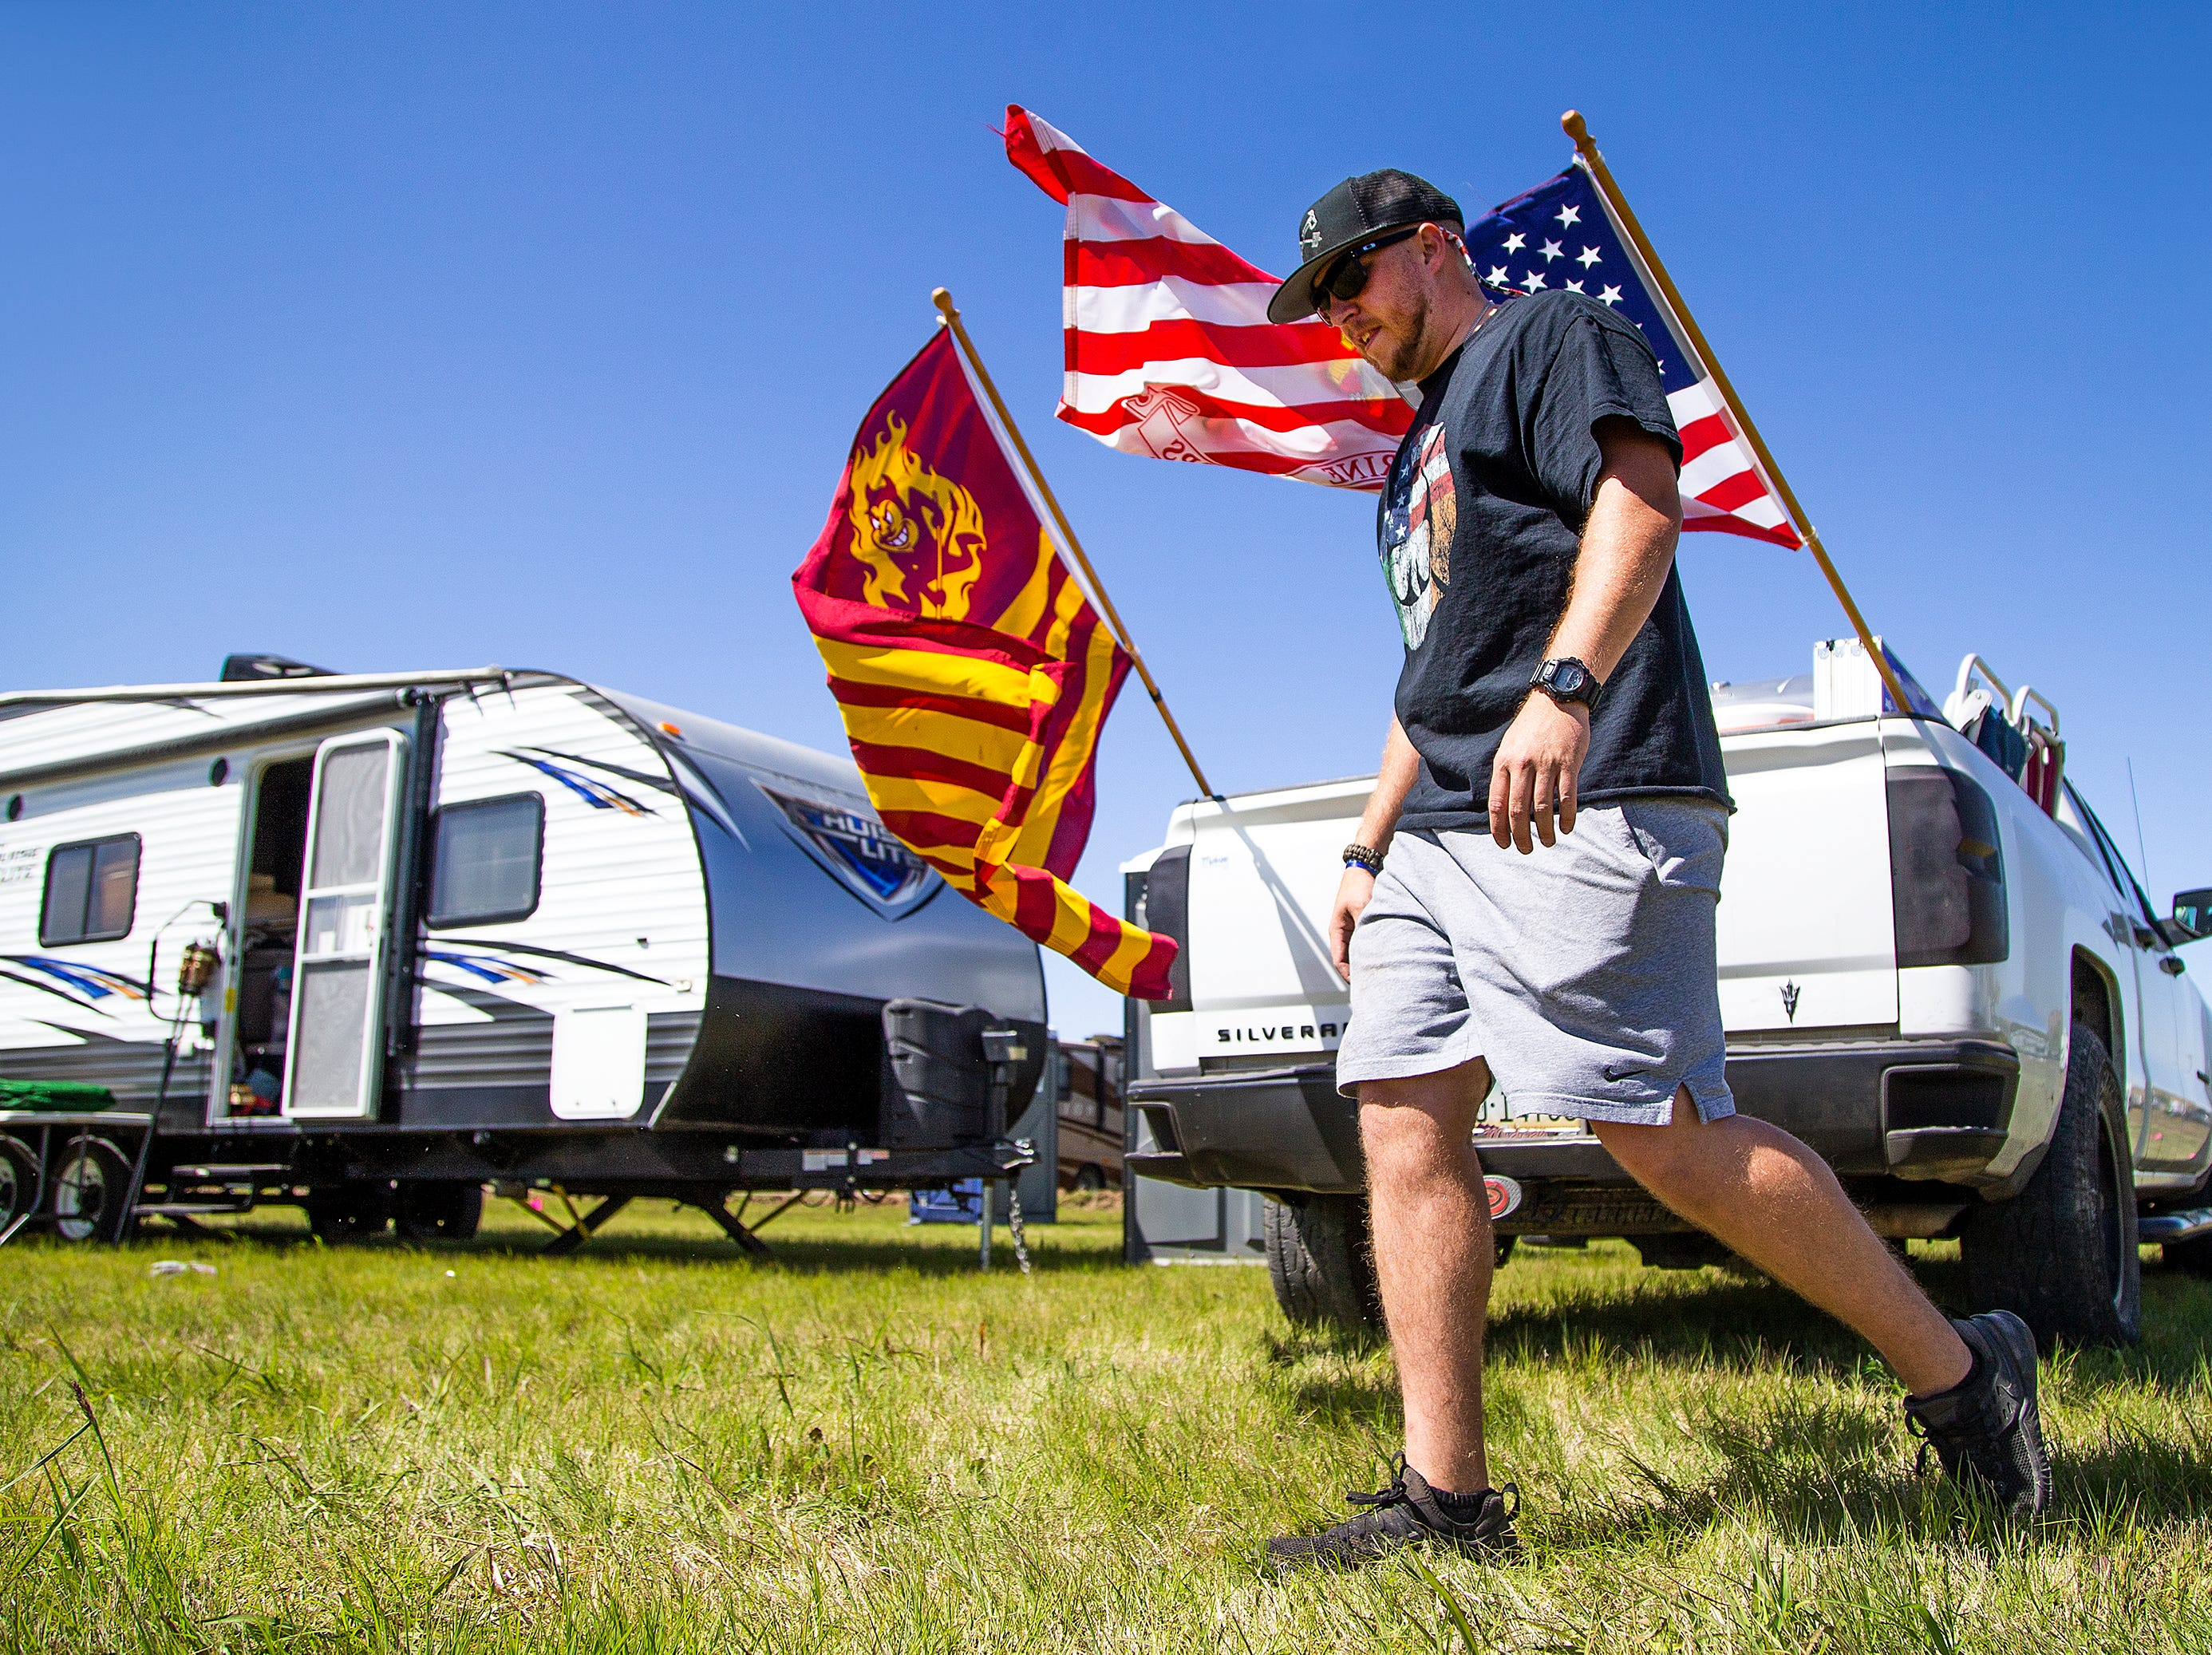 Kyle Billingsley, 28, of Phoenix, arrives at his camping spot at the Country Thunder Arizona 2019 music festival outside Florence April 10, 2019.